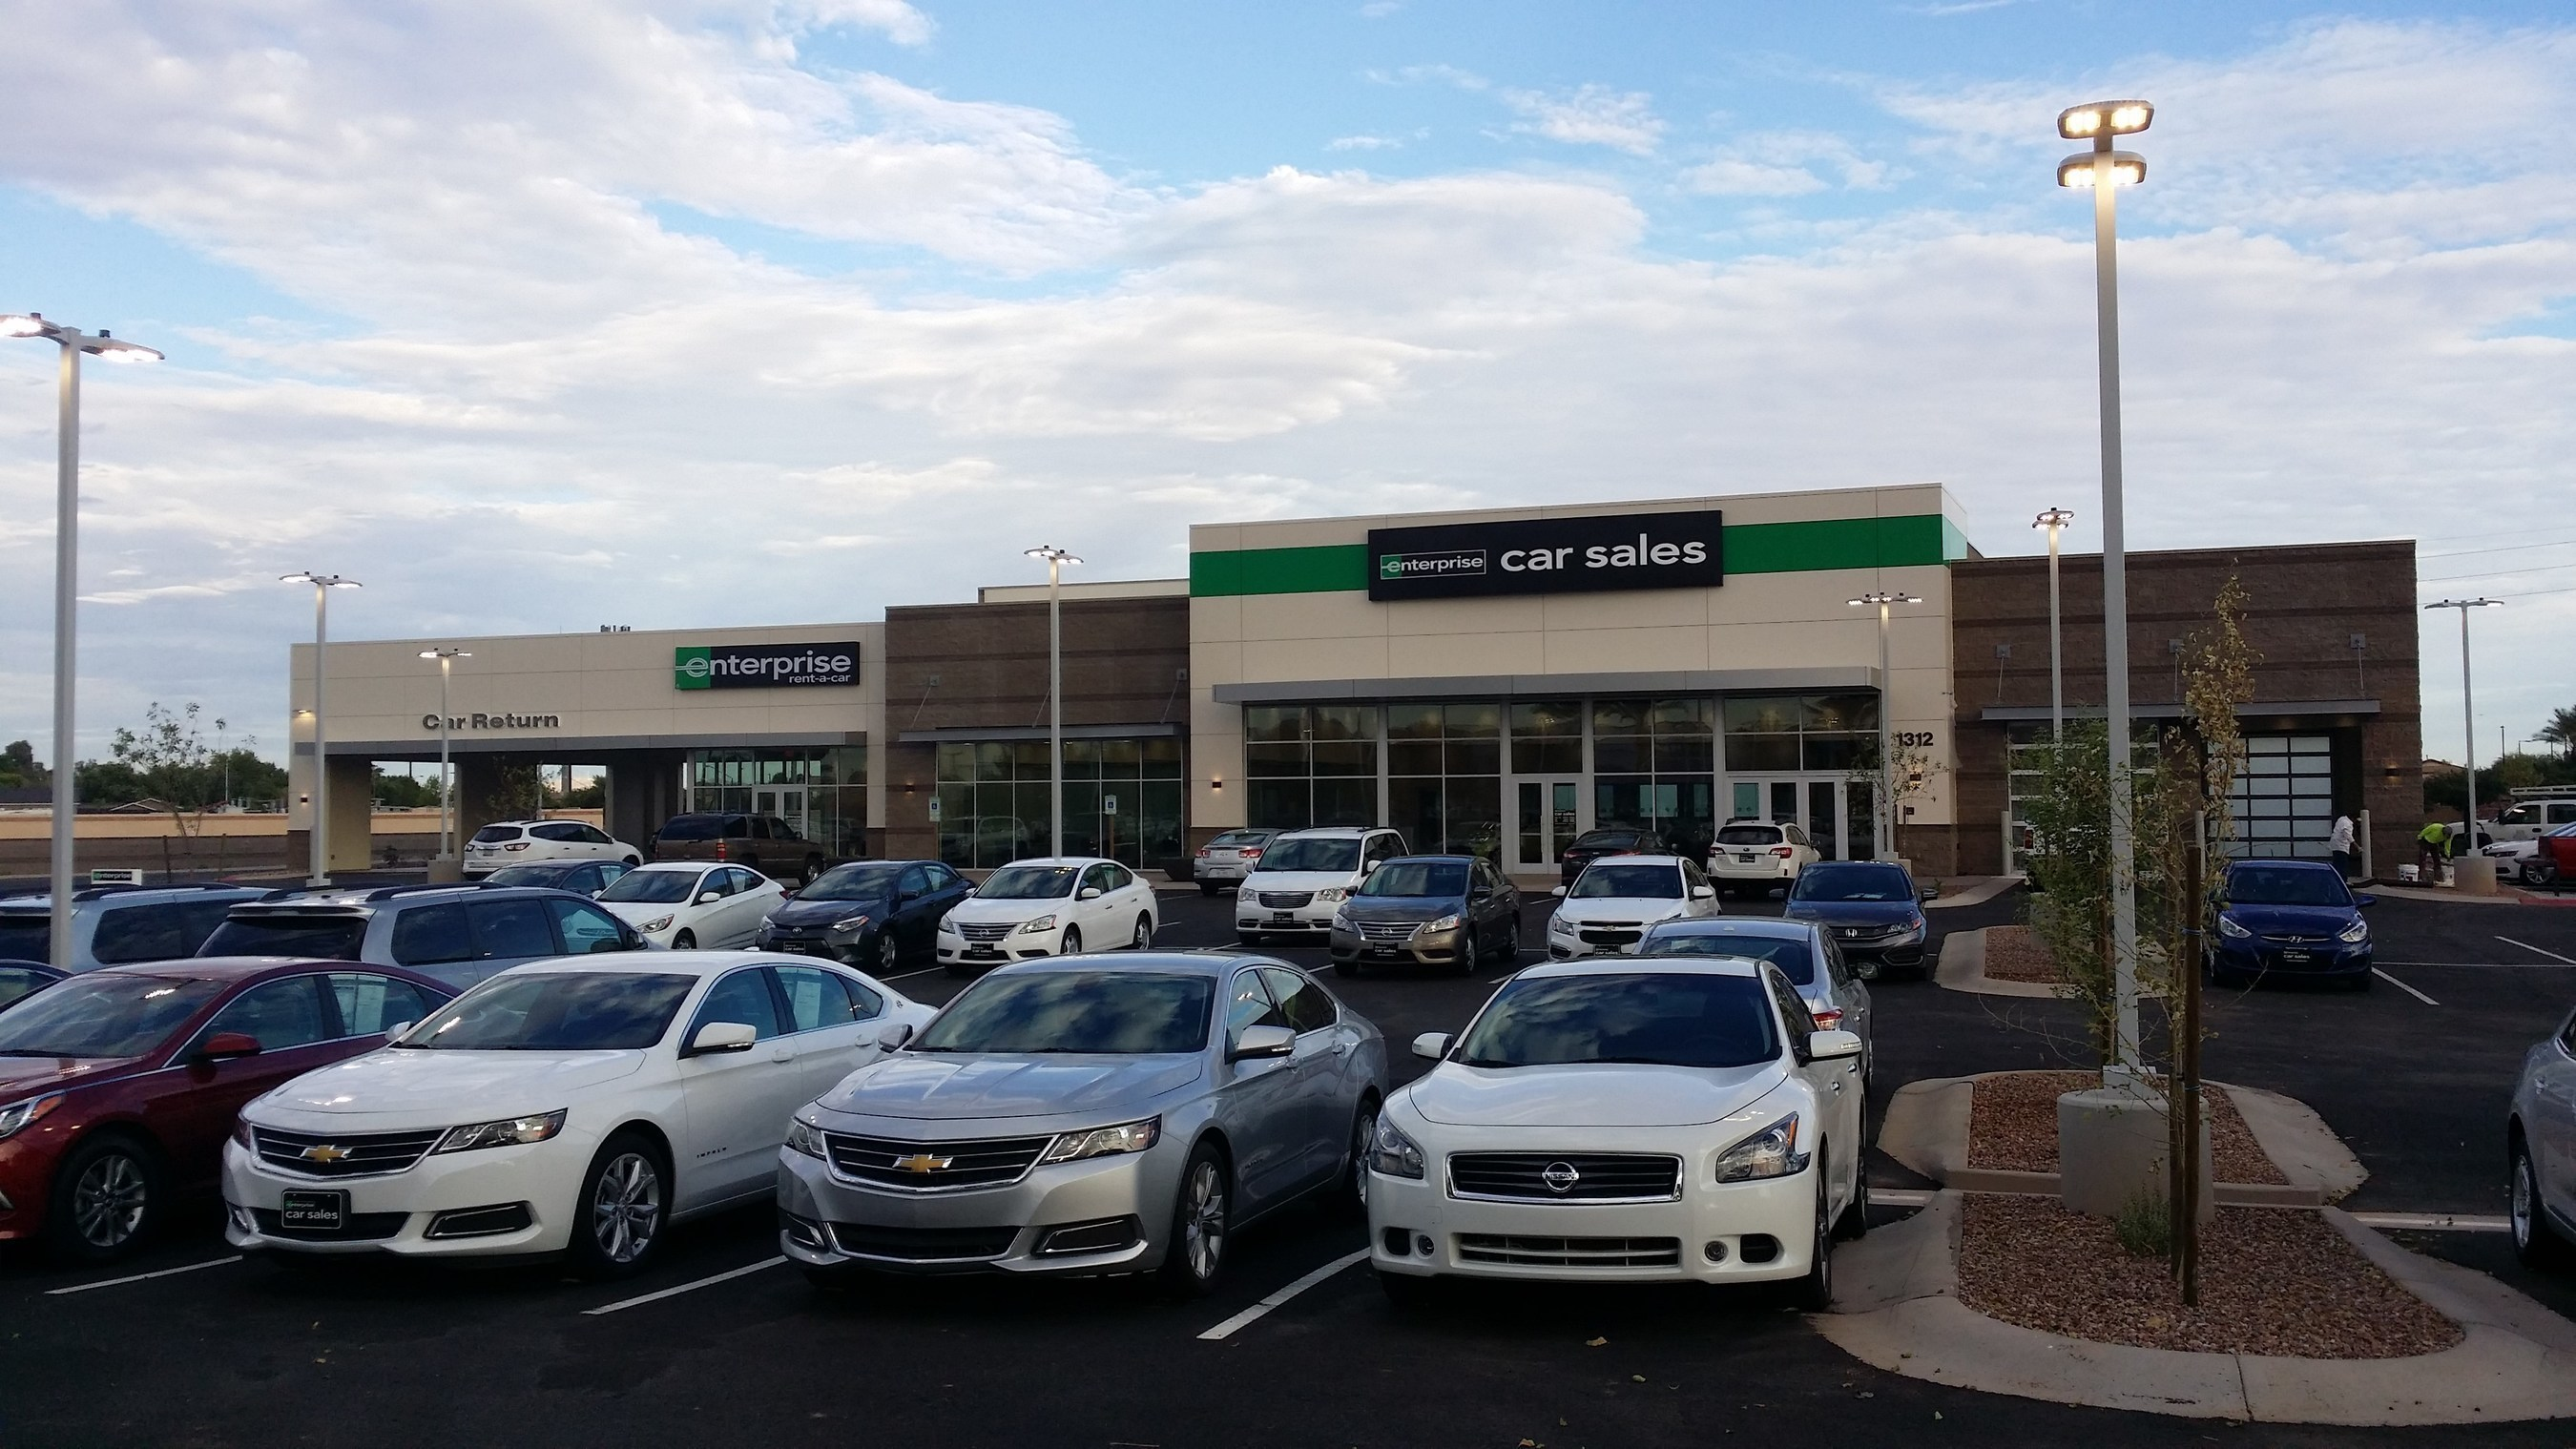 Enterprise Car Sales Expanding Nationwide Two New Locations In Arizona